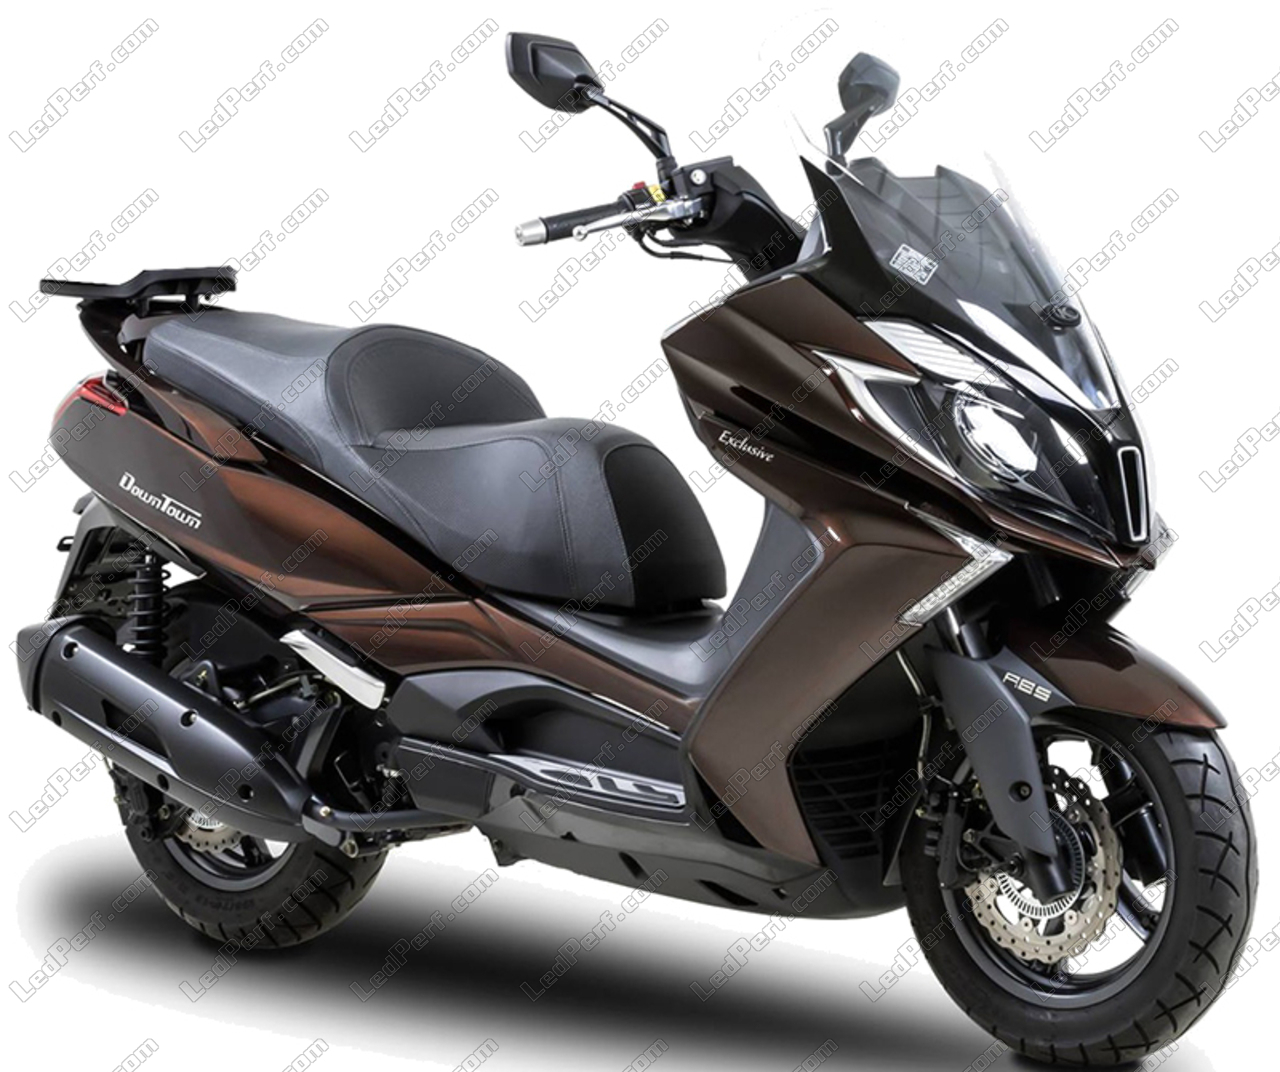 pack front led turn signal for kymco downtown 350. Black Bedroom Furniture Sets. Home Design Ideas